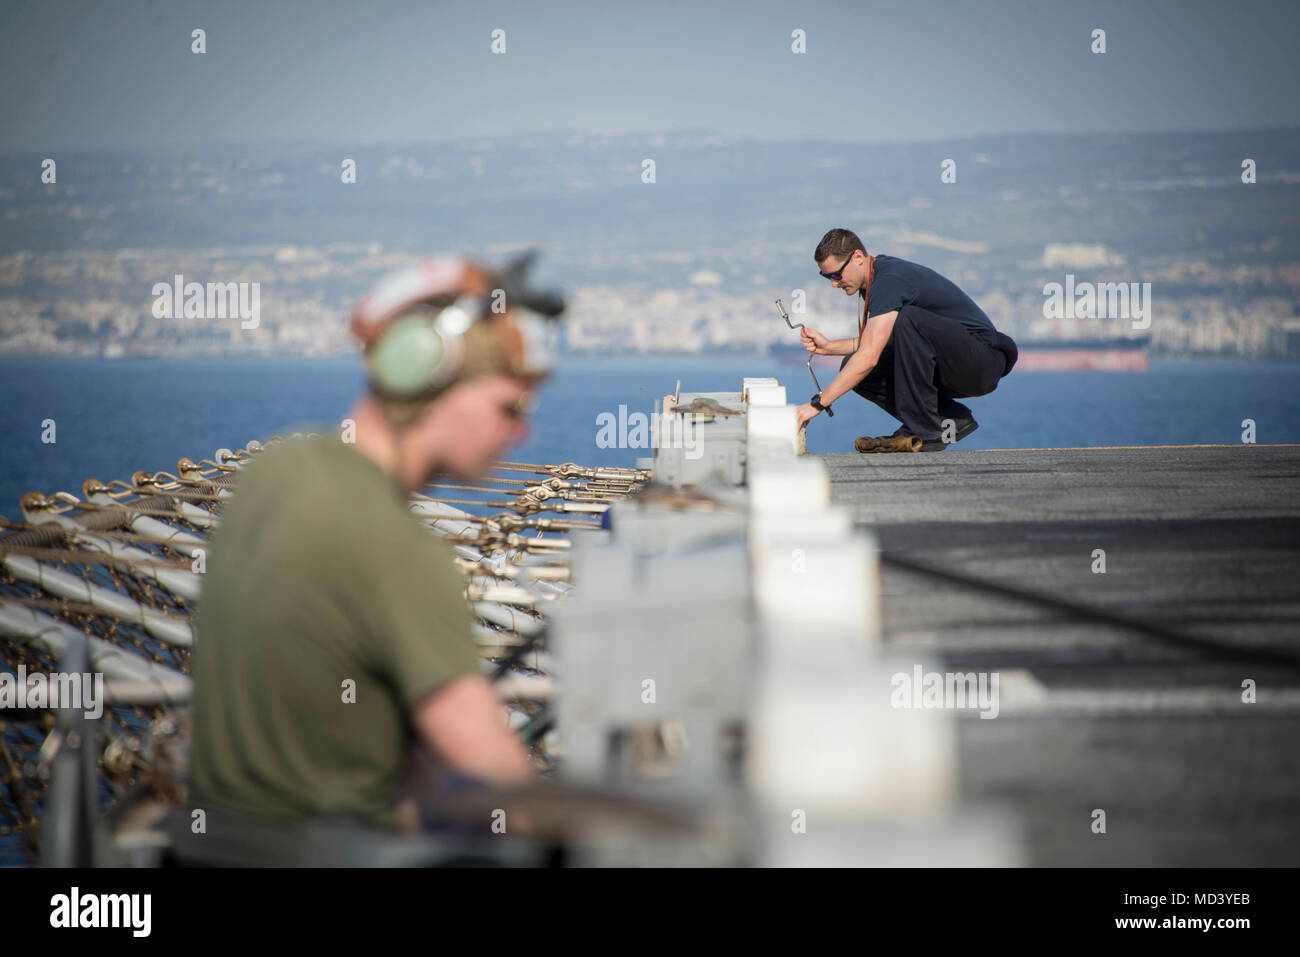 180319-N-QJ850-0023 LIMASSOL, Cyprus (March 19, 2018) A Sailor and Marine do maintenance on the flight deck as the Wasp-class amphibious assault ship USS Iwo Jima (LHD 7) arrives in Limassol, Cyprus, for a scheduled port visit March 19, 2018. Iwo Jima, homeported in Mayport, Florida, is in Limassol, Cyprus, as part of a scheduled port visit as the ship conducts naval operations in the U.S. 6th Fleet area of operations. (U.S. Navy photo by Mass Communication Specialist 2nd Class Andrew Murray/Released) - Stock Image